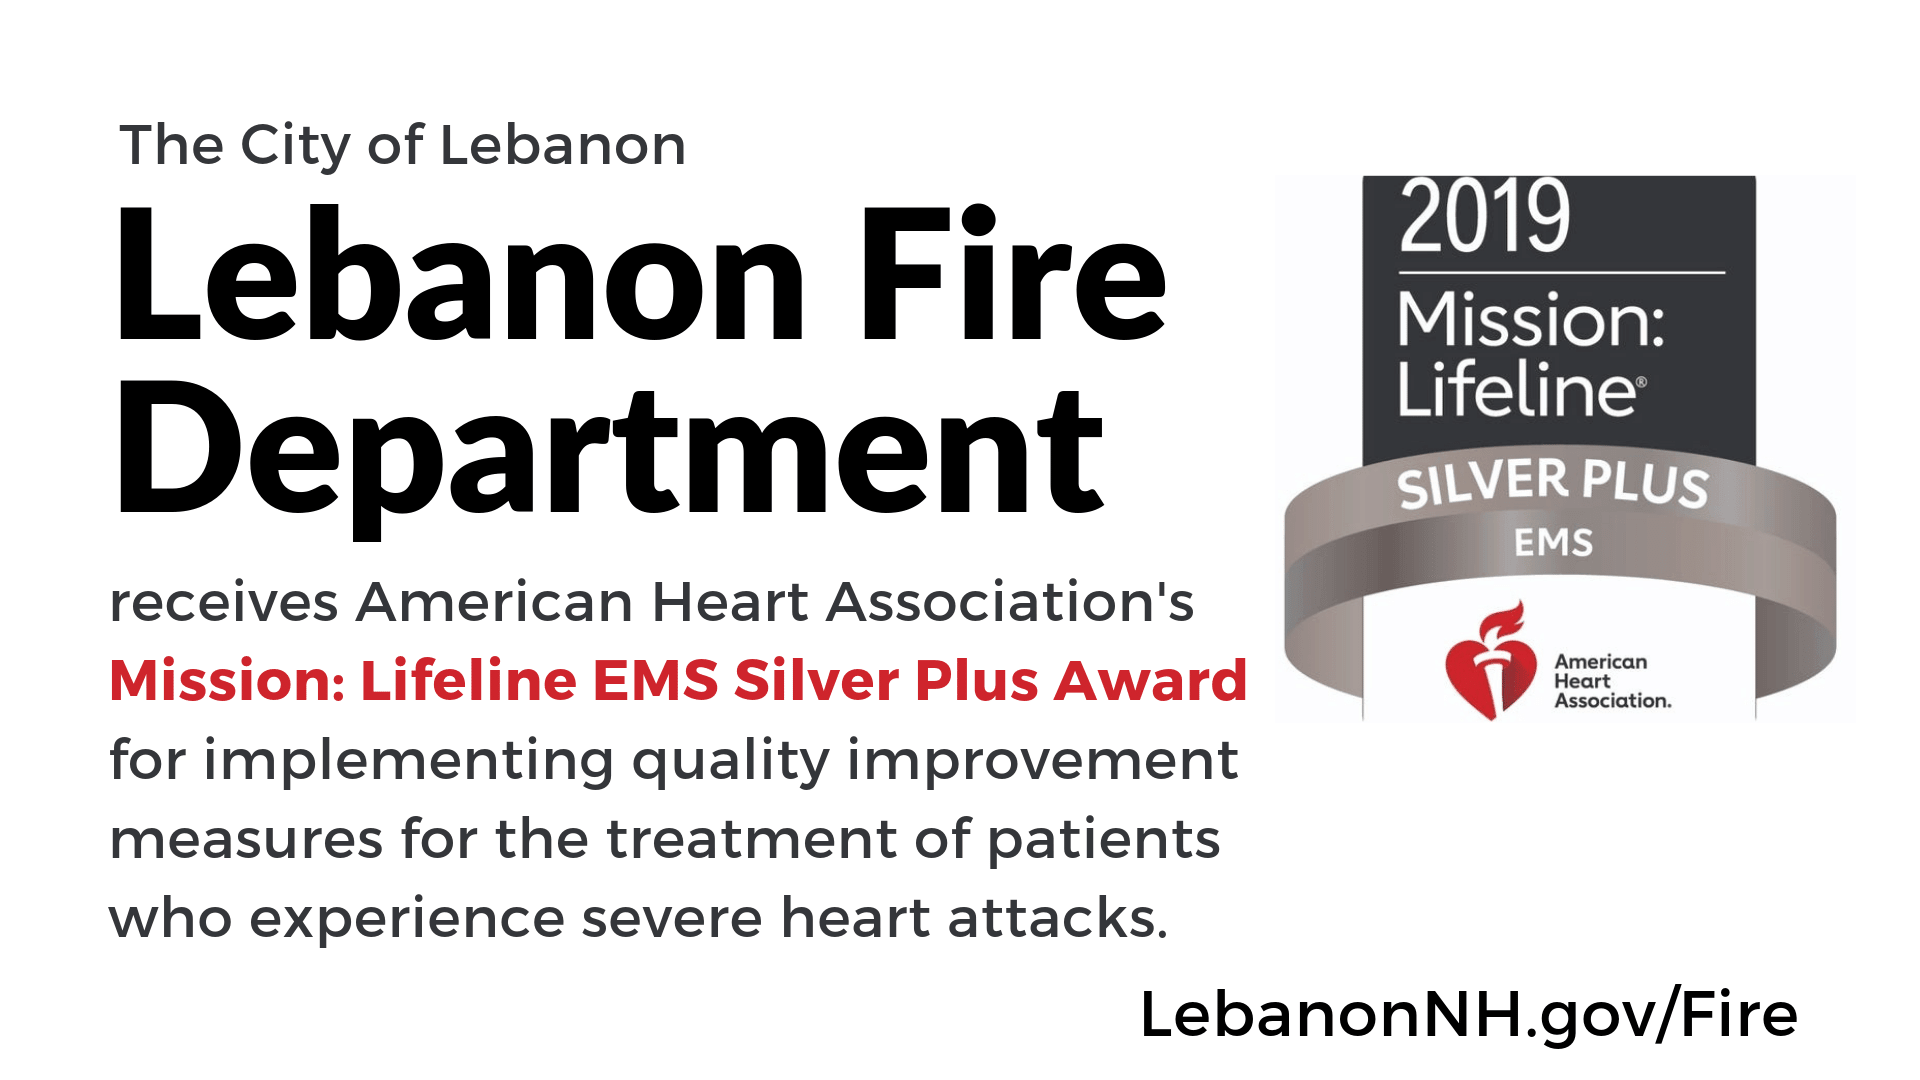 Lebanon Fire Receives AMA Mission: Lifeline Silver Plus Award